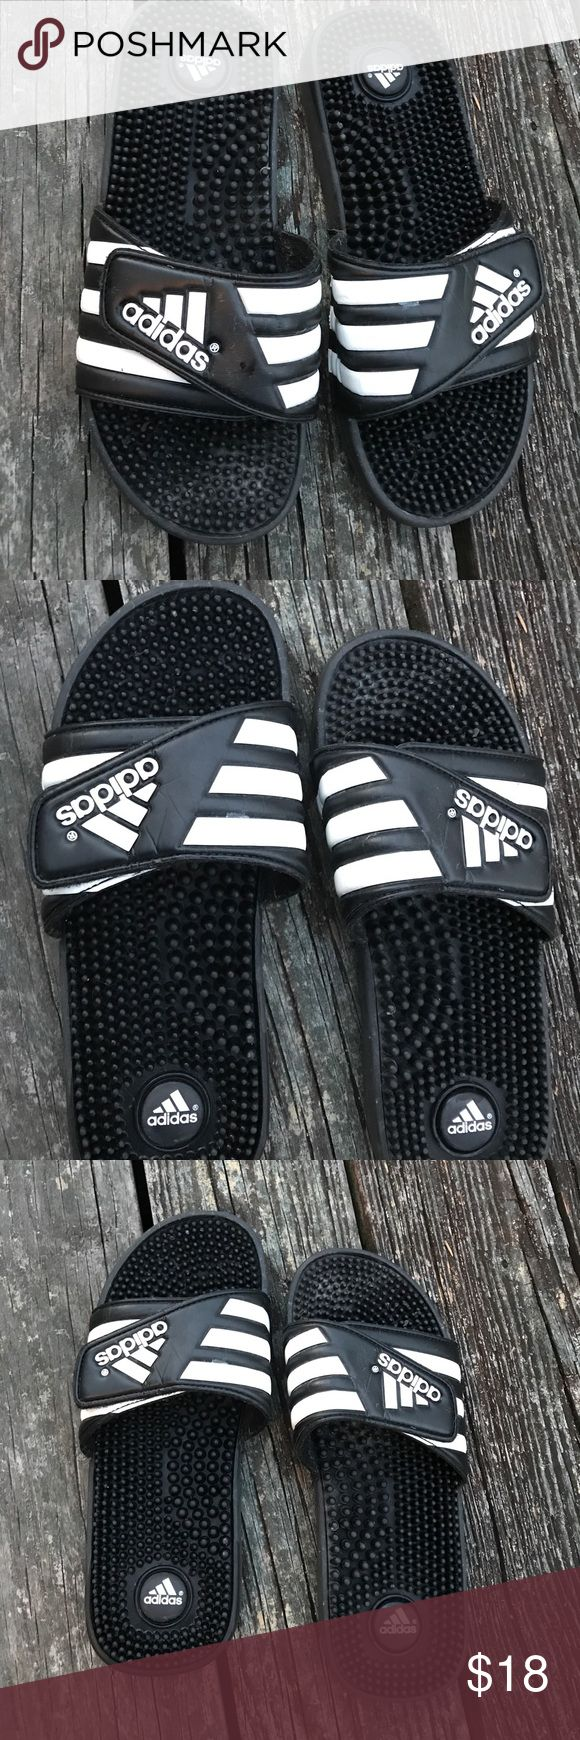 👱Adidas slides Black and white. Excellent condition. Before shipping, I will brush clean- one more time. Men size 9 Shoes Sandals & Flip-Flops